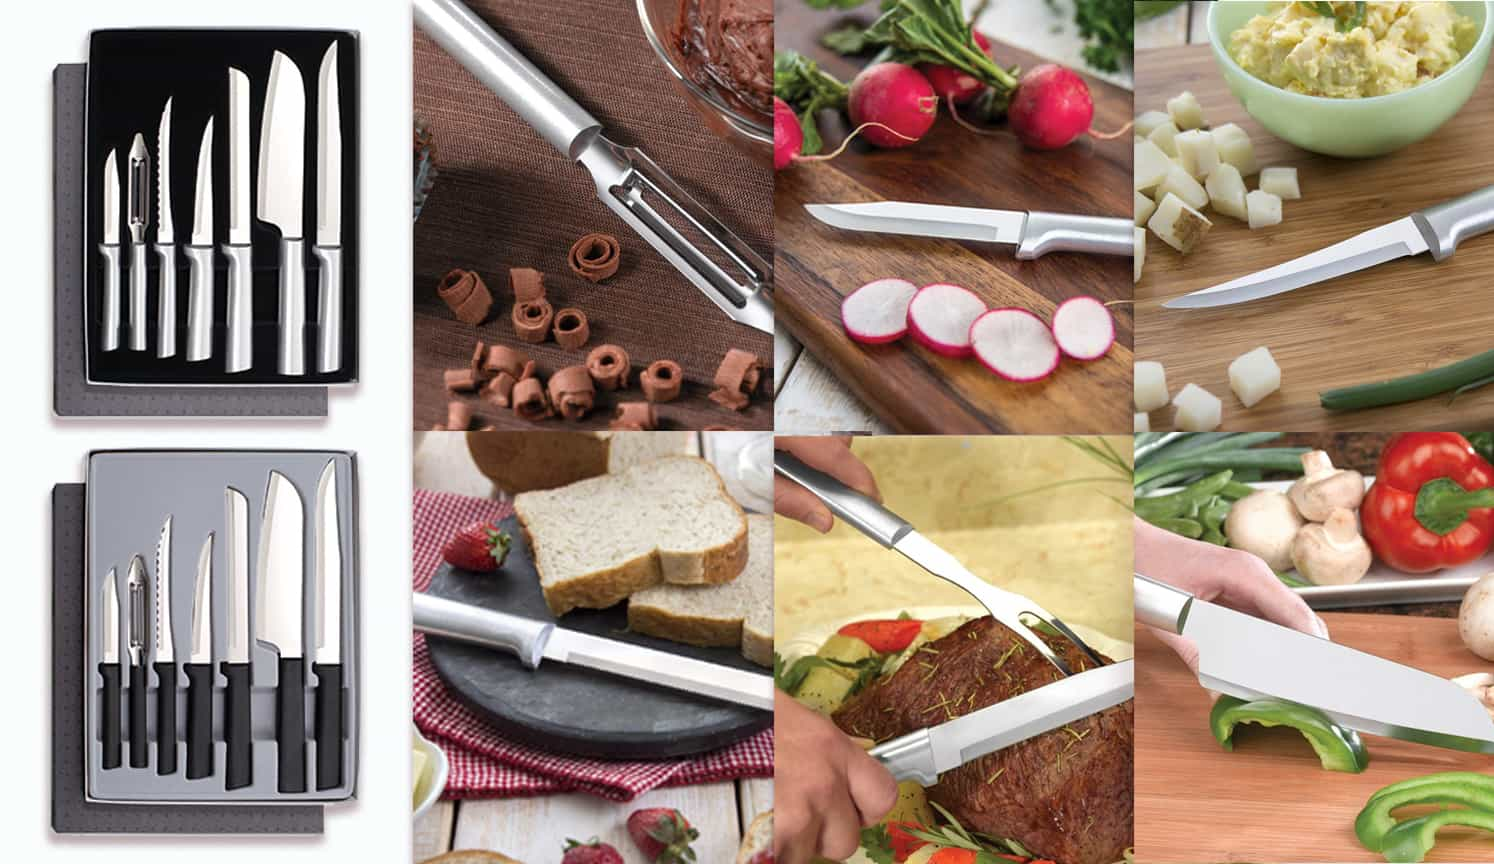 Best Culinary Knives as the third related product of the Best Chef Knife